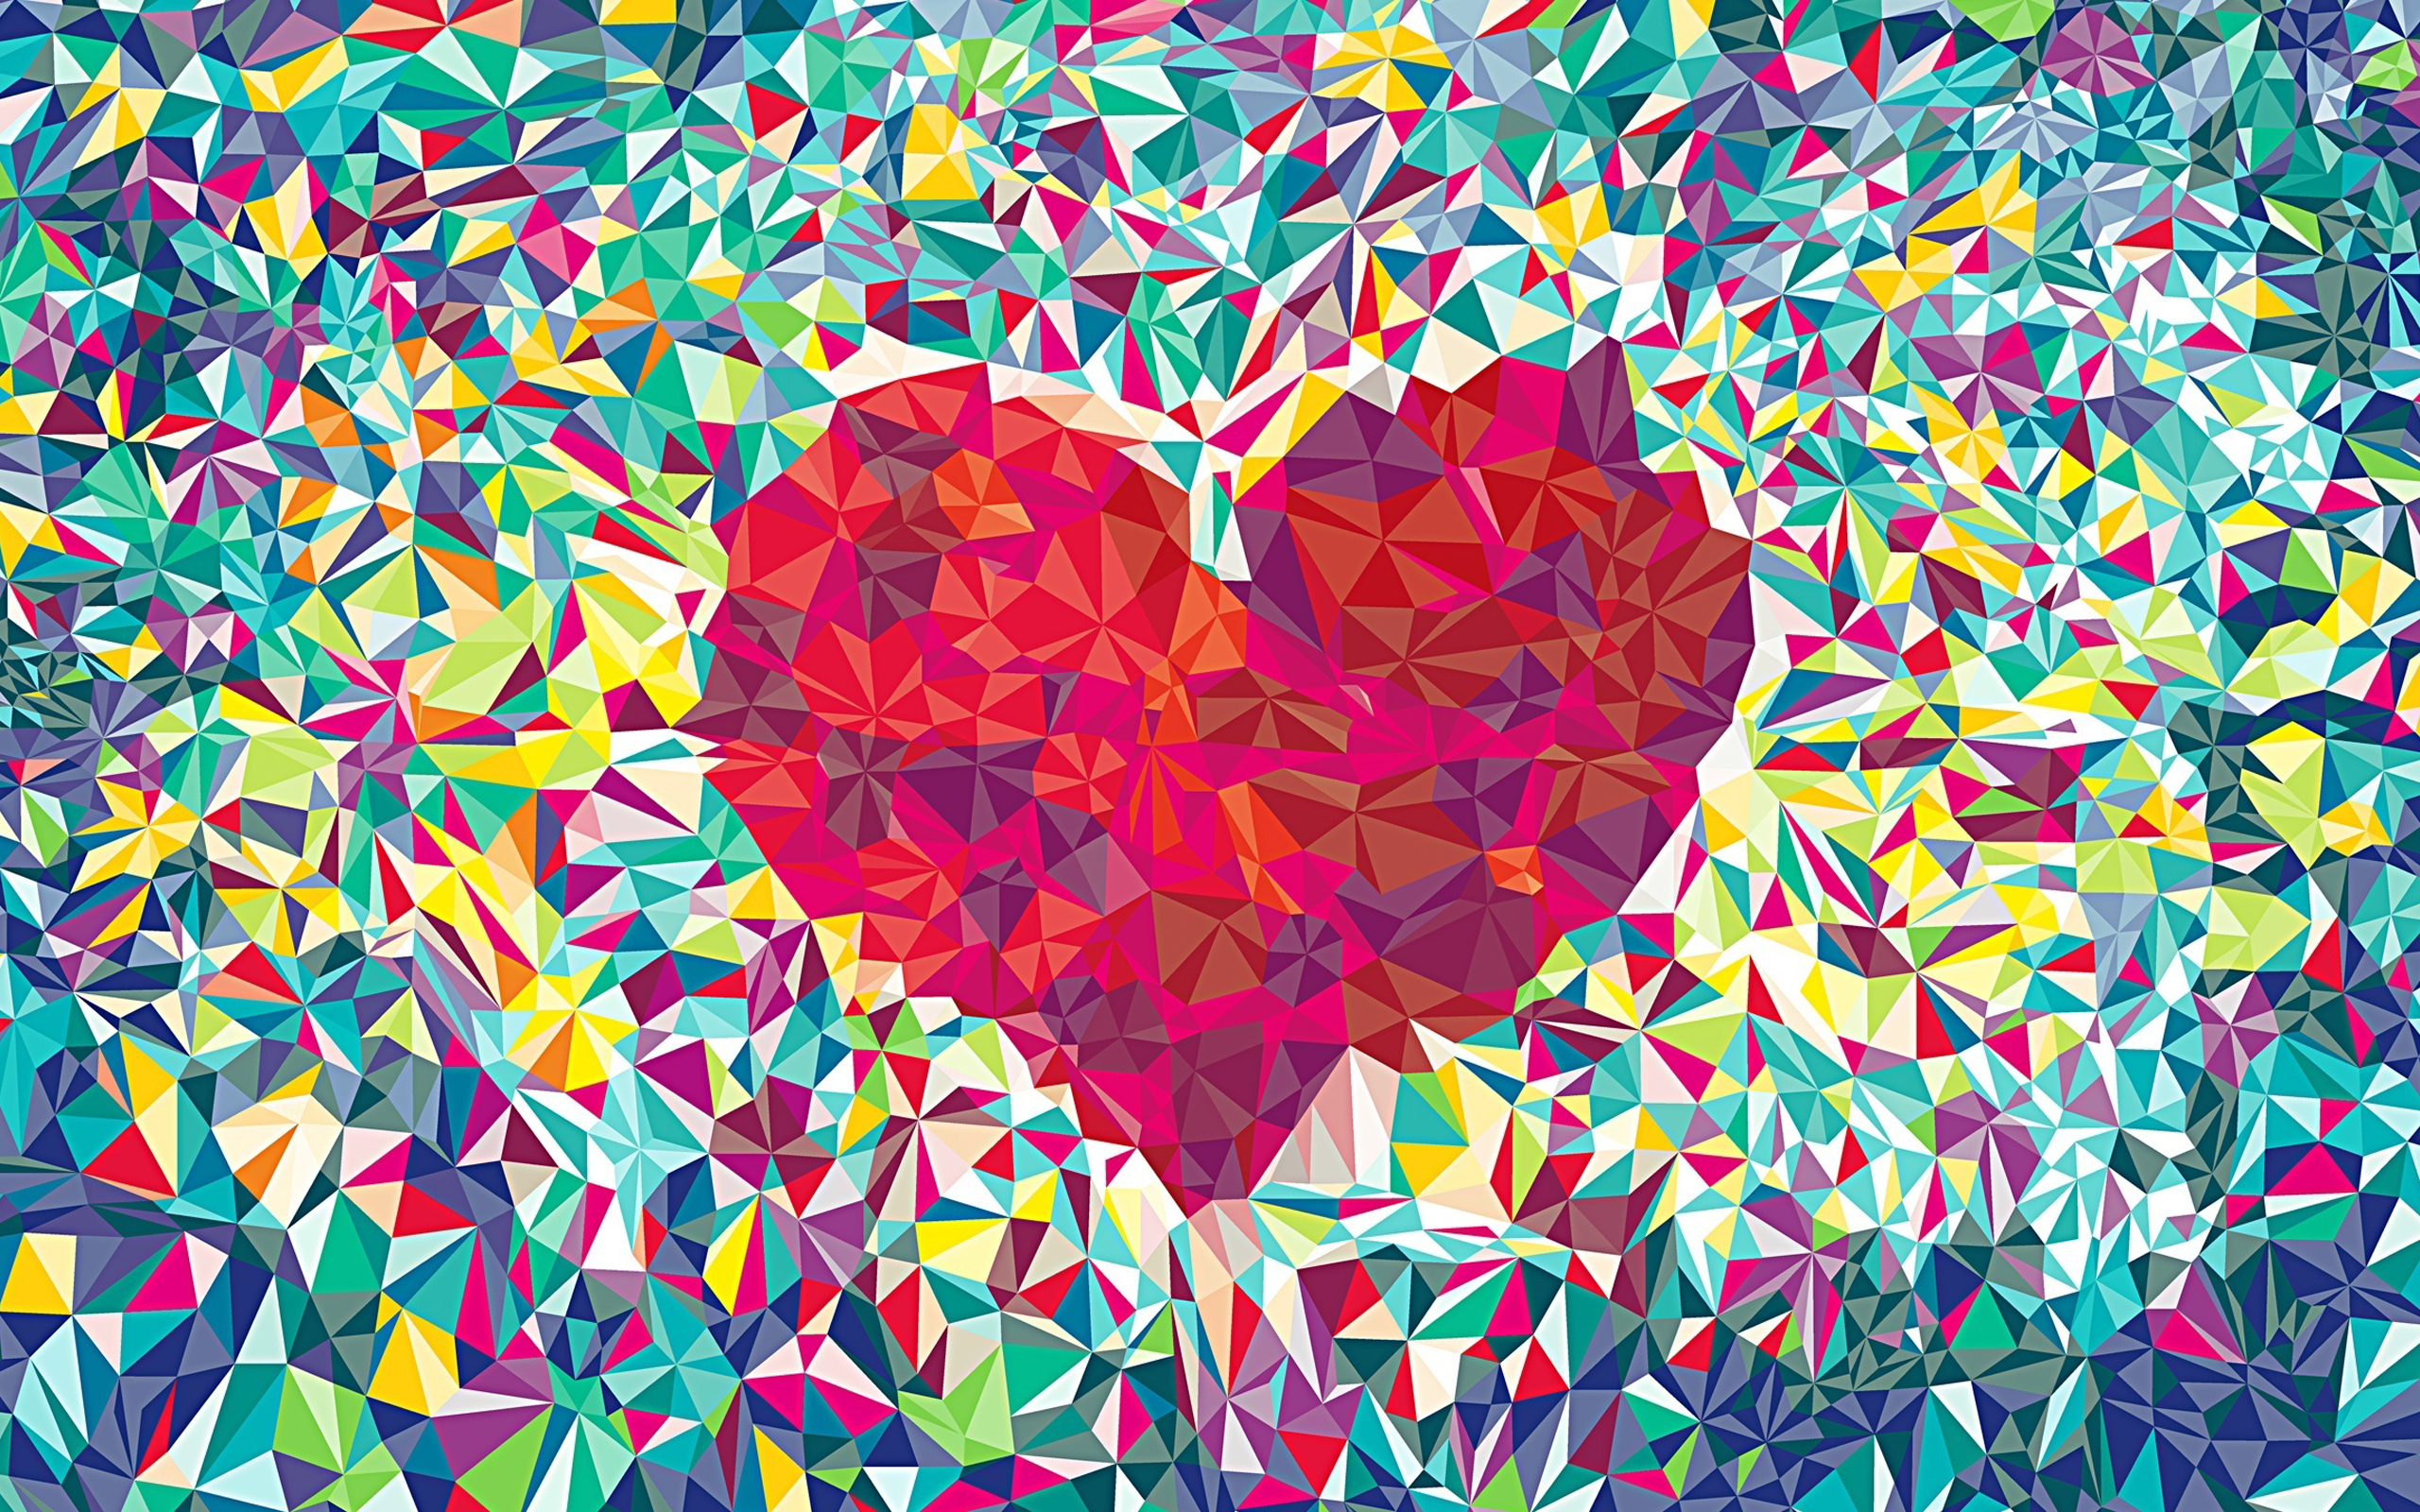 Geometric Heart Abstract Wallpapers 215.88 Kb